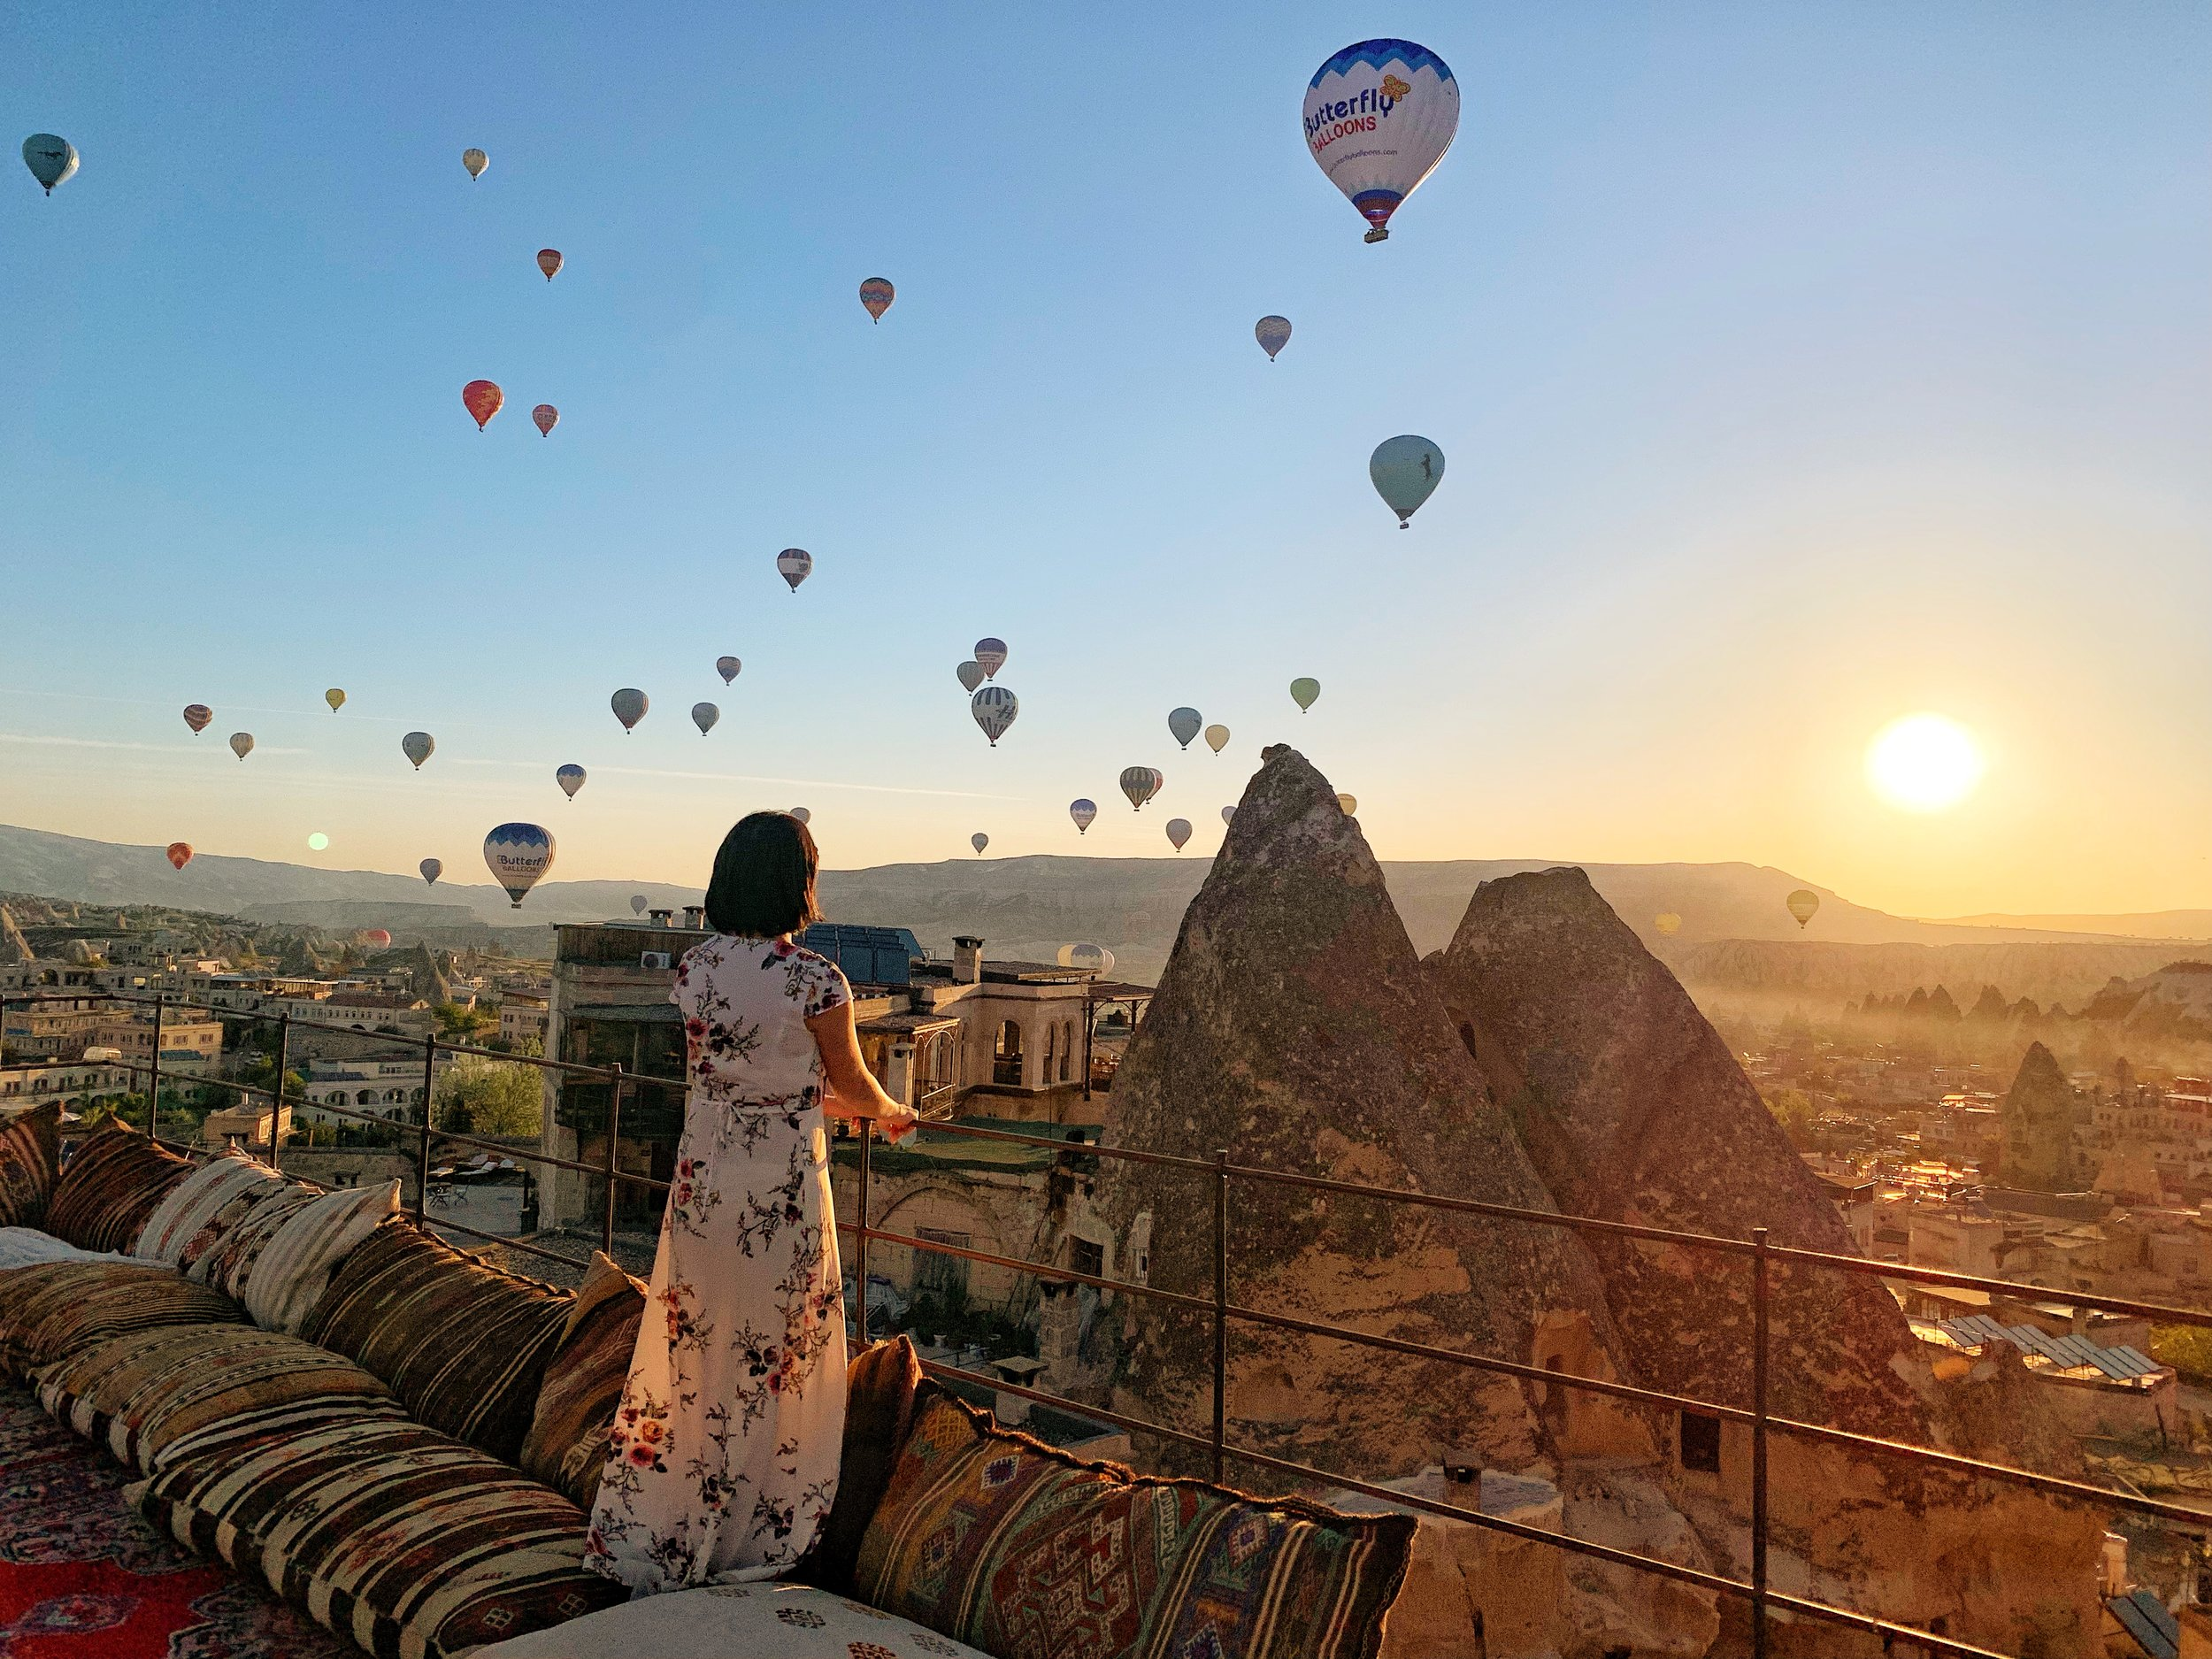 Angela Lim during sunrise in Turkey